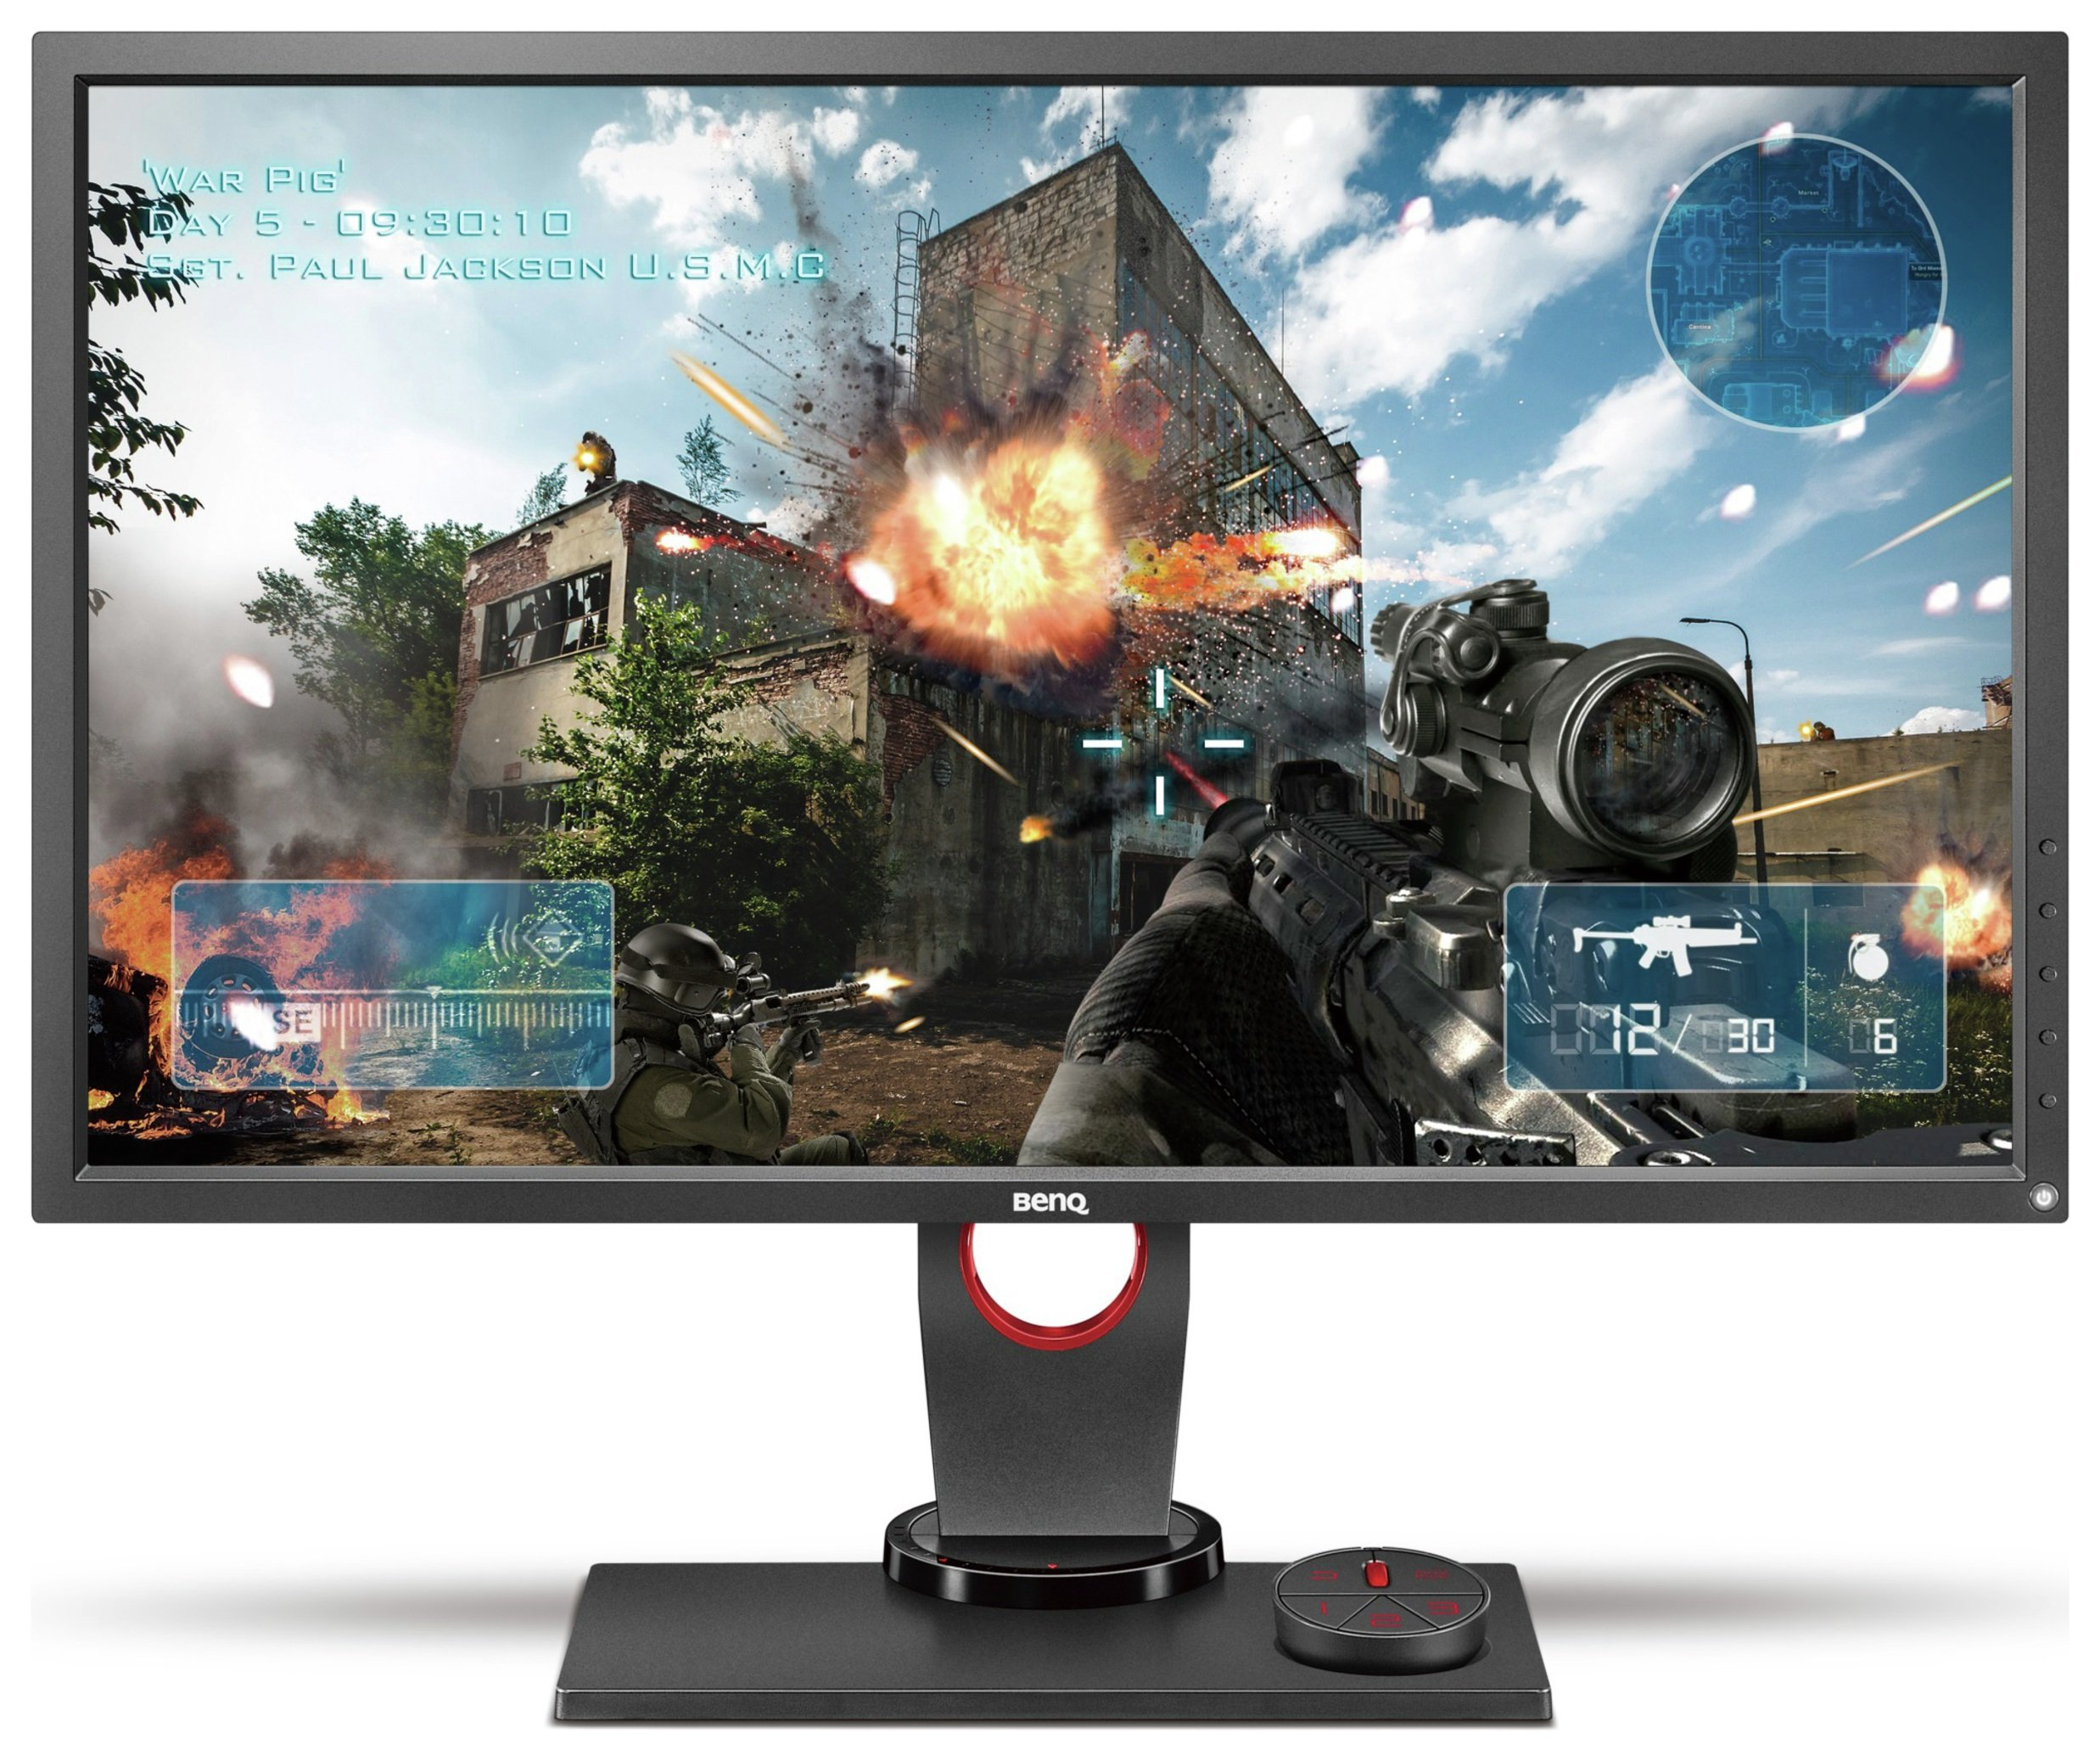 Image of BenQ Zowie XL2730 27 Inch Gaming PC Monitor.